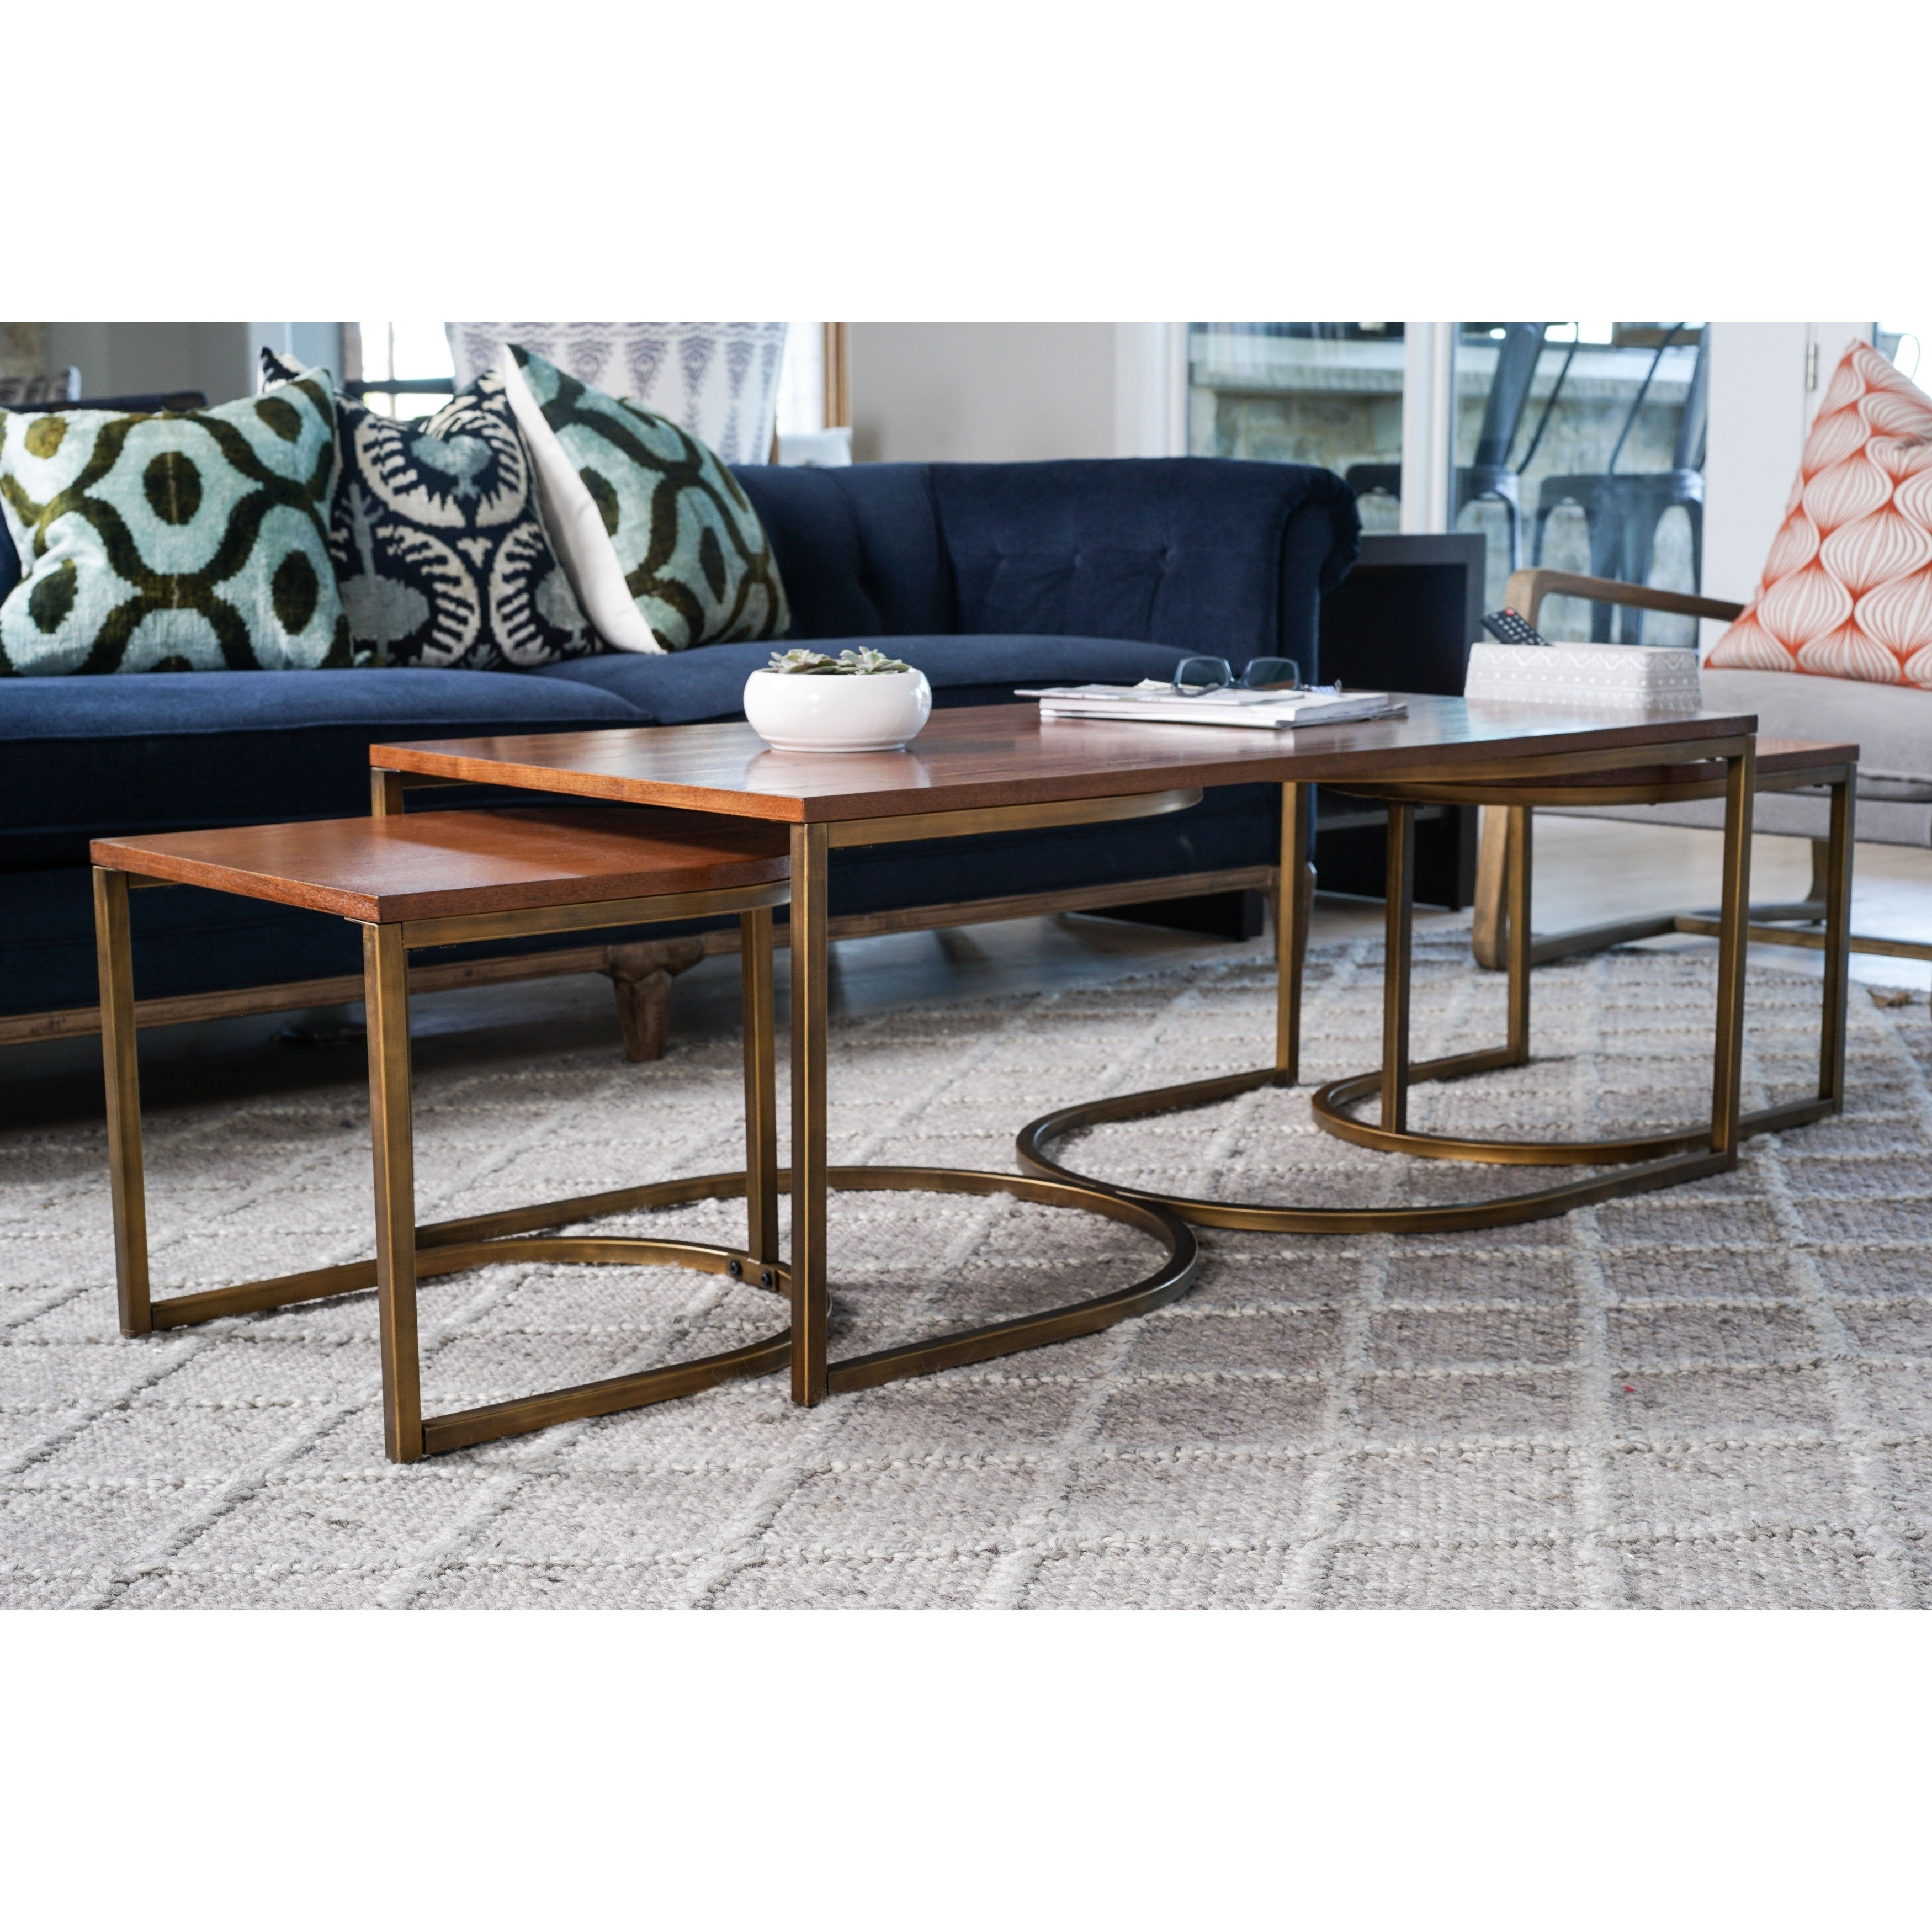 Shop Lincoln Deco Walnut Nesting Coffee Tables, Haven Homehives Inside Famous Haven Coffee Tables (View 10 of 20)